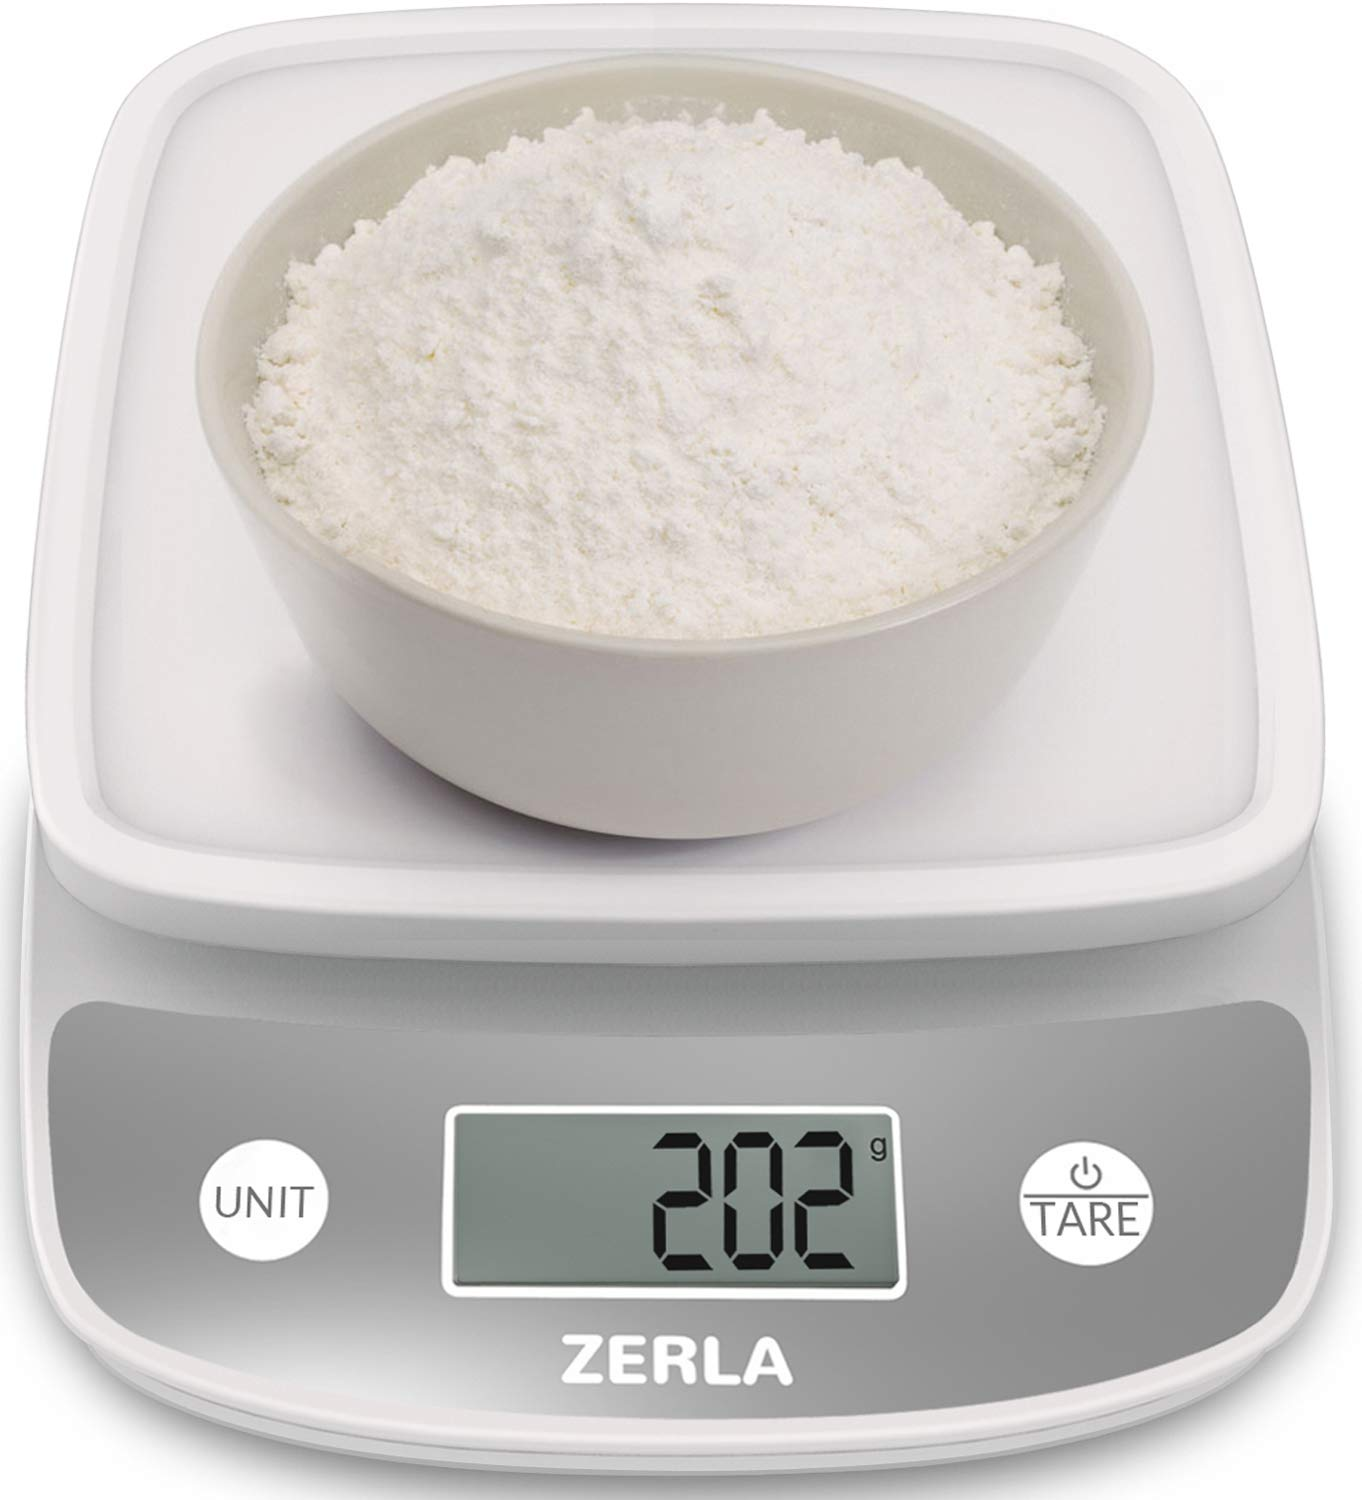 Zerla versatile digital food scale